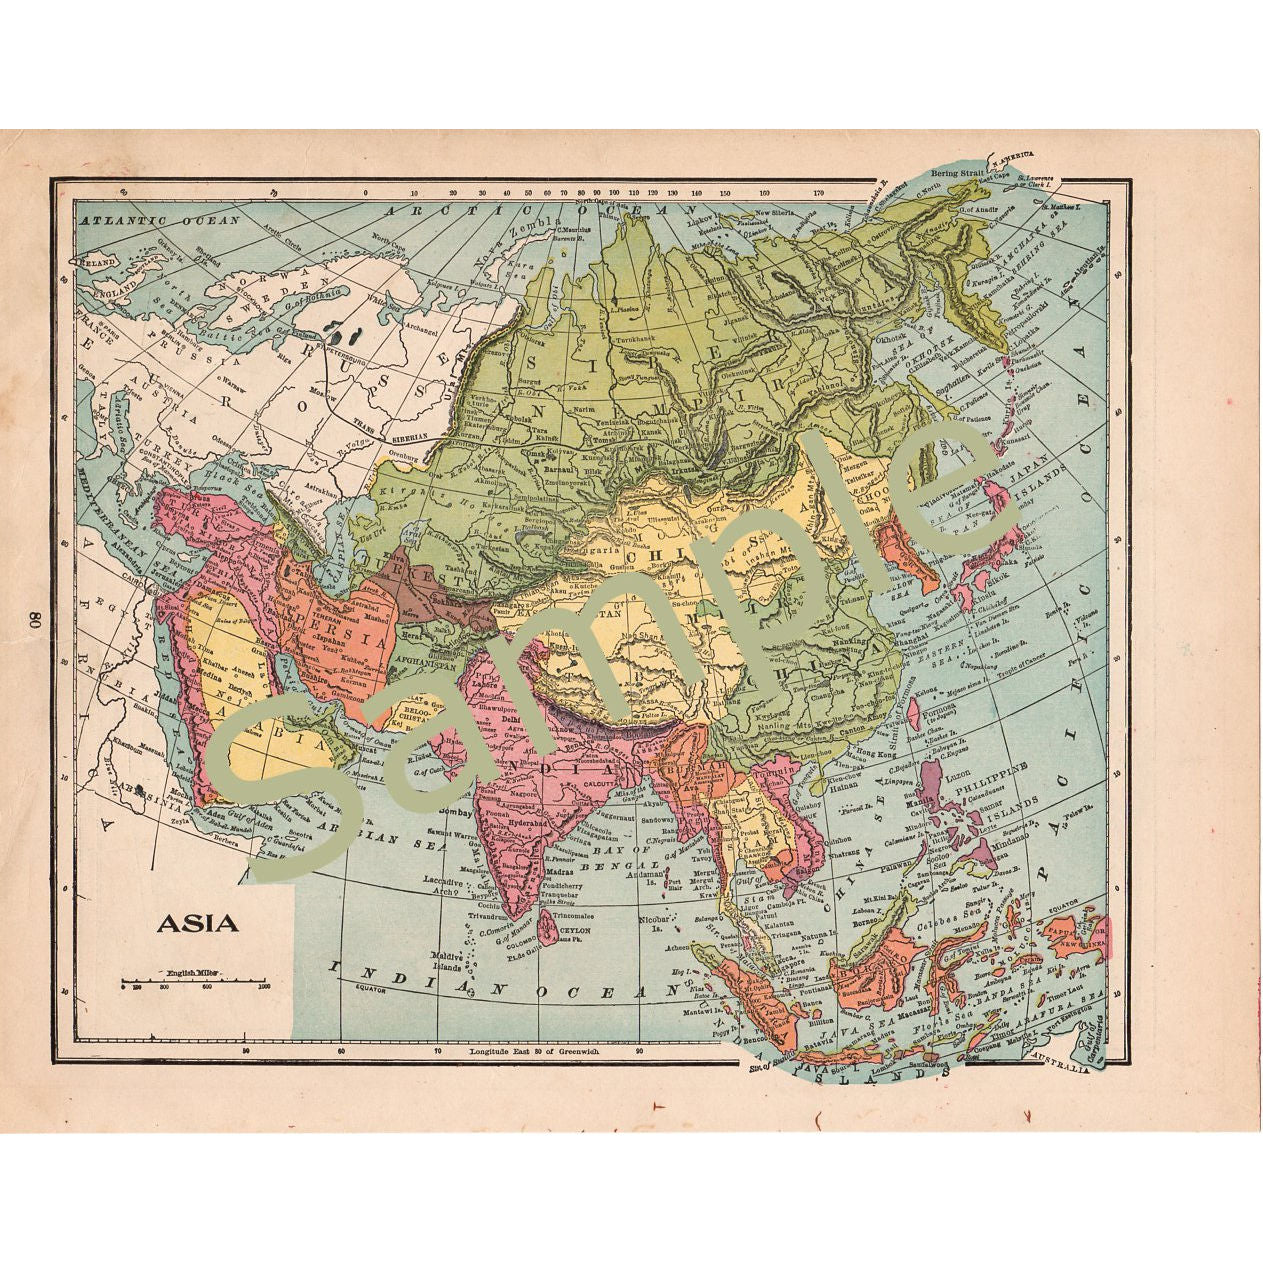 Map Of Asia 1900.Printable Antique Color Map Of Asia Instant Digital Download 1900 Illustration